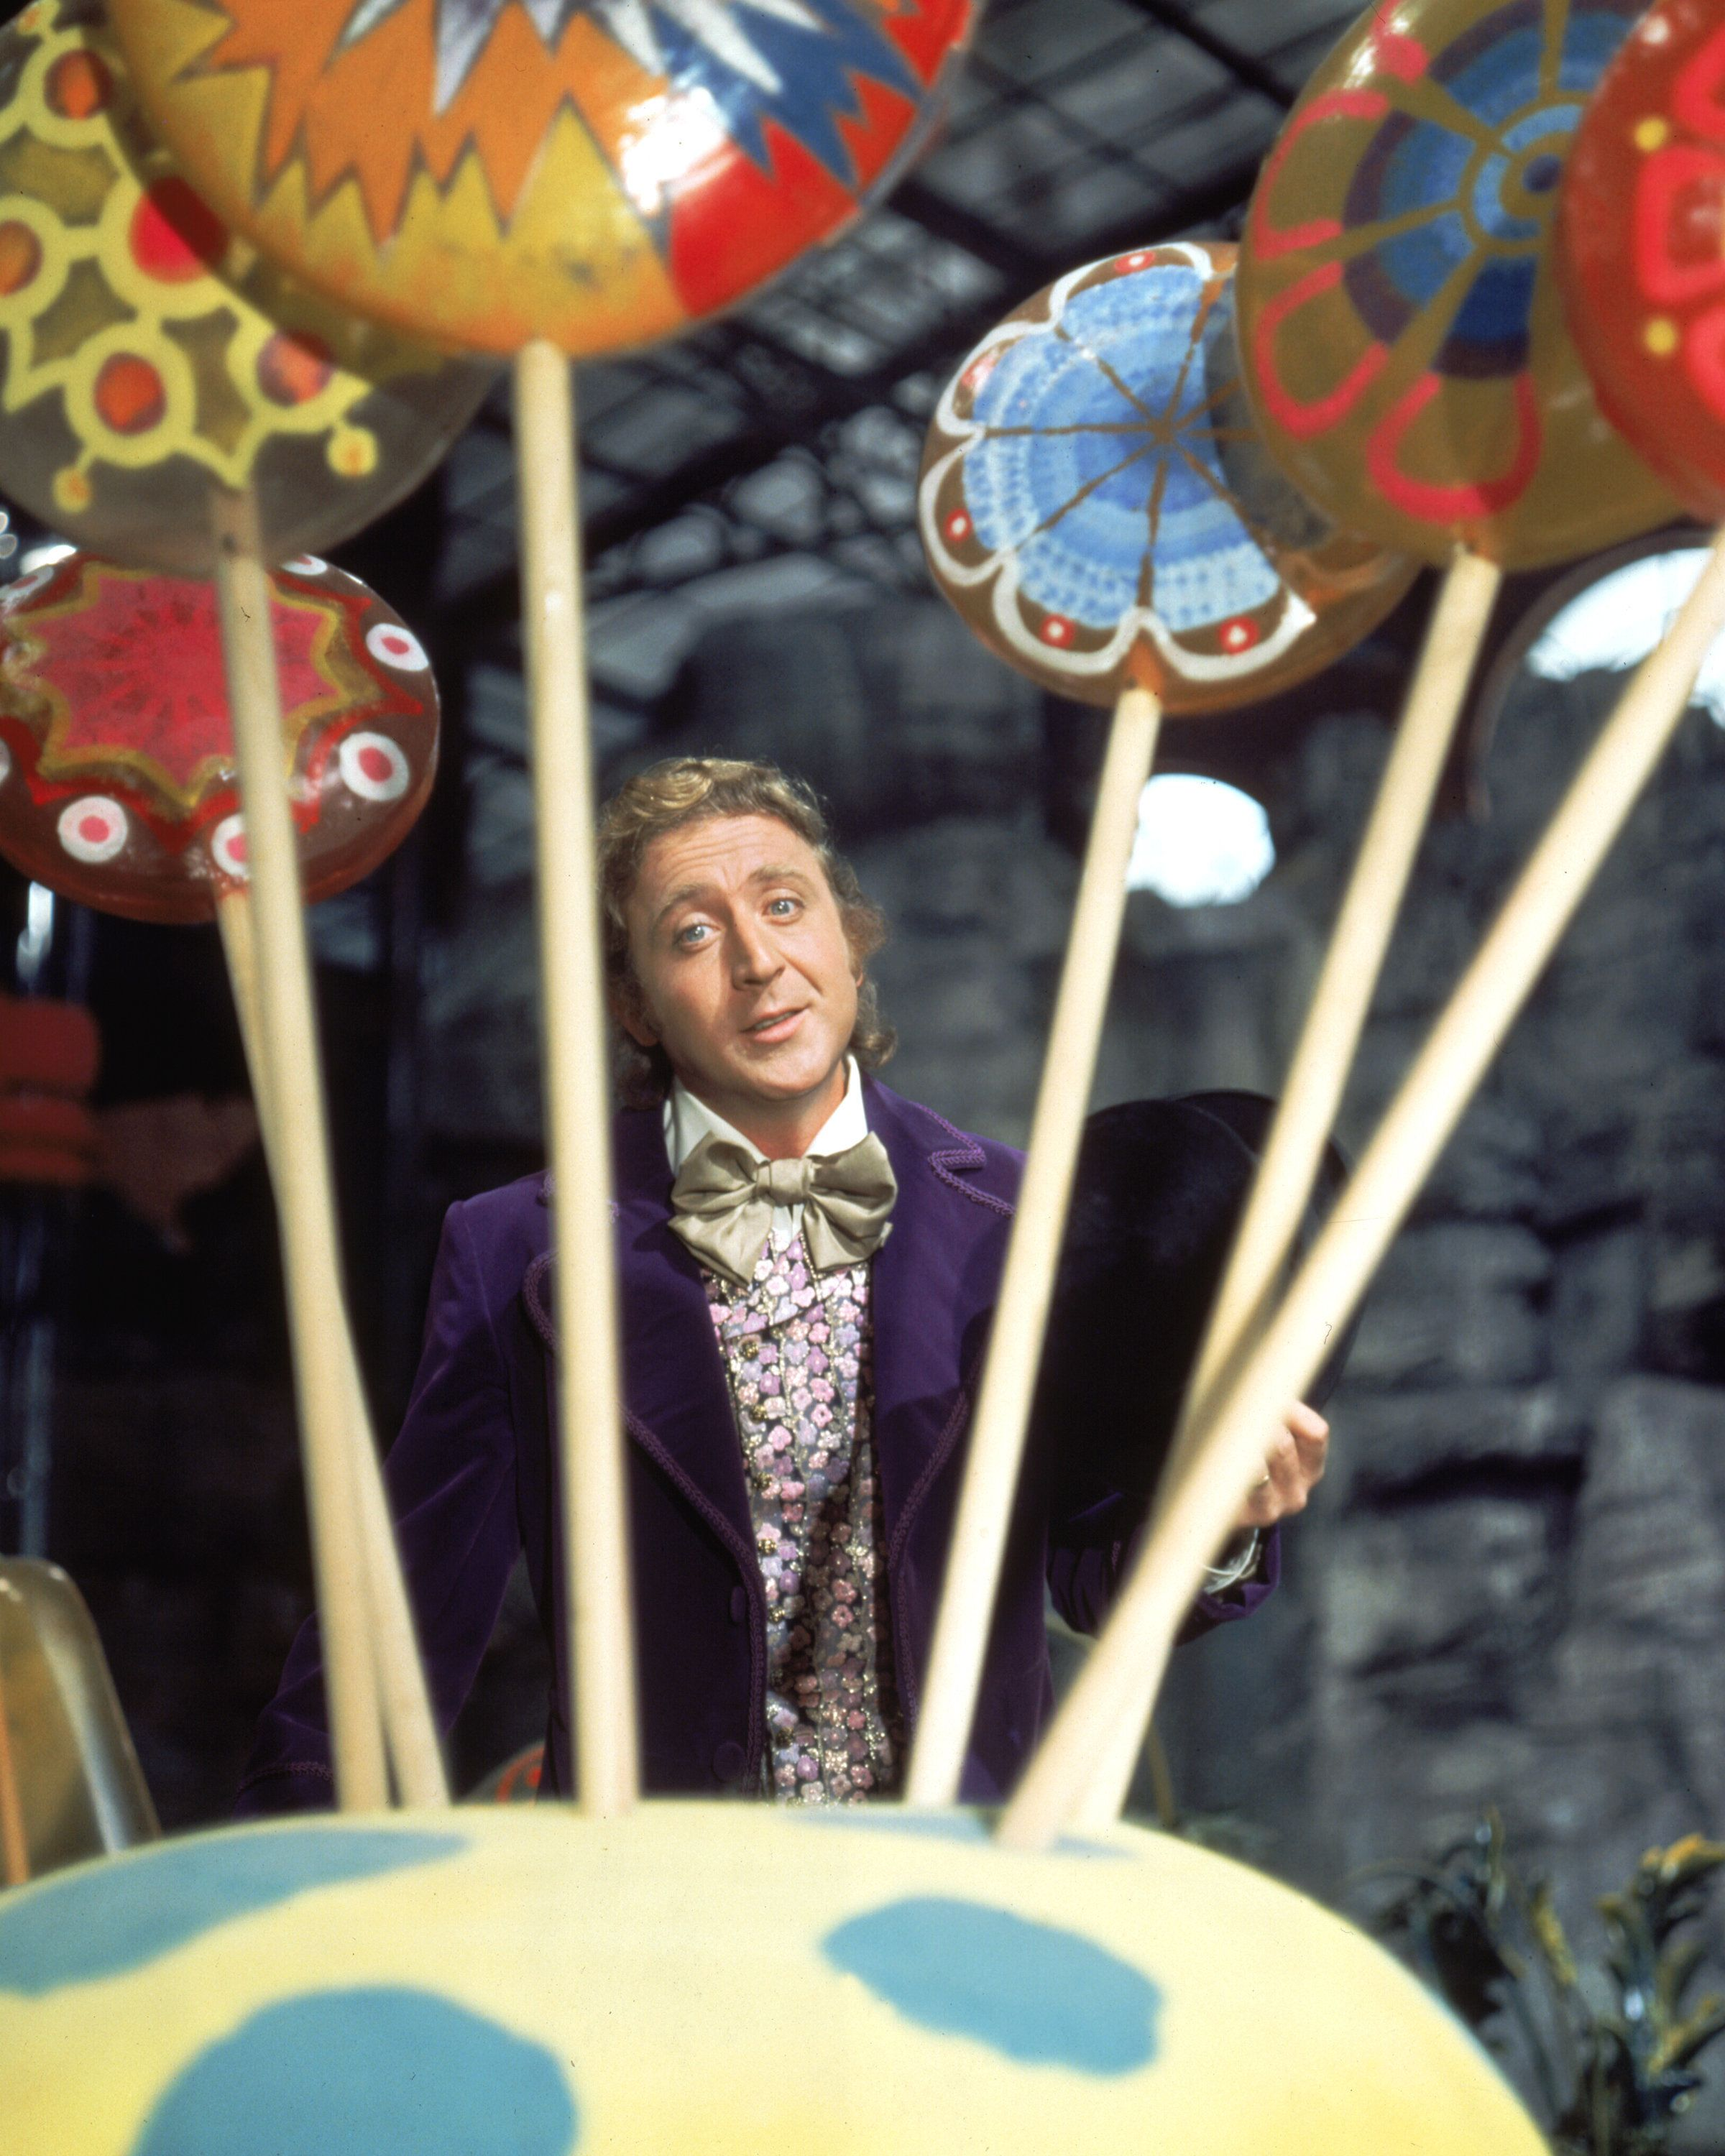 Actor Gene Wilder as Willy Wonka on the set of the fantasy film 'Willy Wonka & the Chocolate Factory', based on the book by Roald Dahl, 1971.  (Photo by Silver Screen Collection/Getty Images)